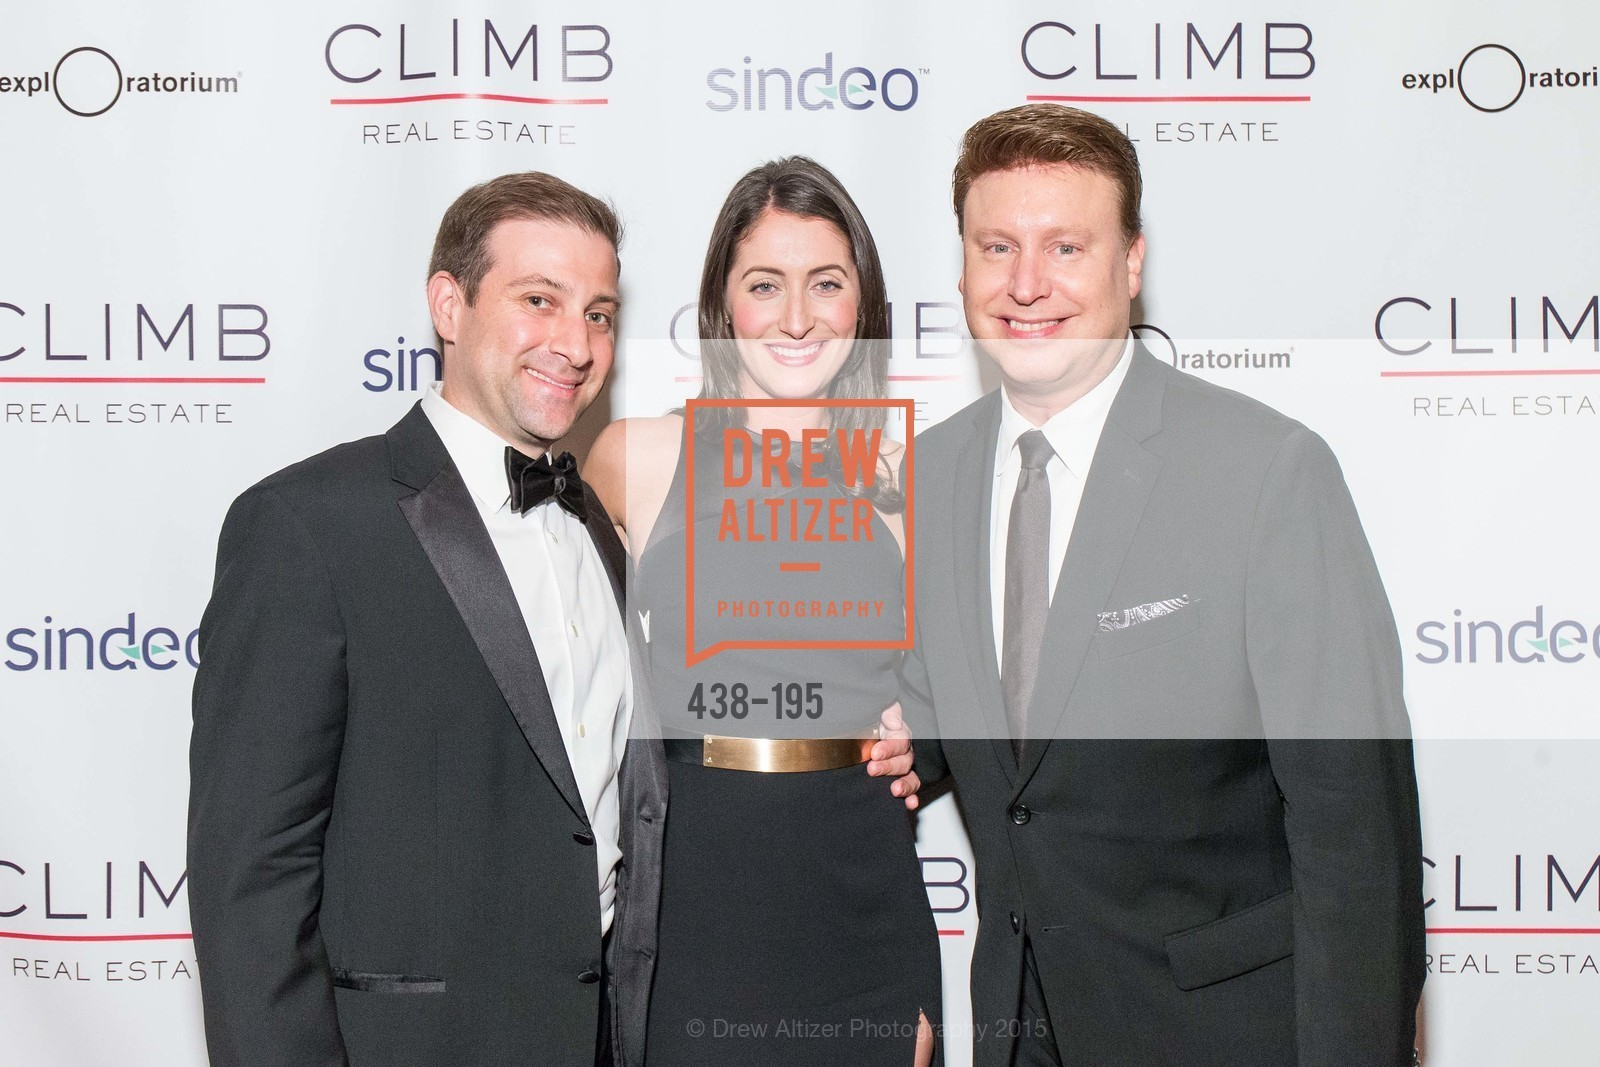 Dave Saxe, Jenn Sockolov, Doug Waggener, Climb Real Estate and Sindeo Celebrate the Launch of Million Dollar Listing San Francisco, Local Edition San Francisco. 691 Market St, July 8th, 2015,Drew Altizer, Drew Altizer Photography, full-service agency, private events, San Francisco photographer, photographer california